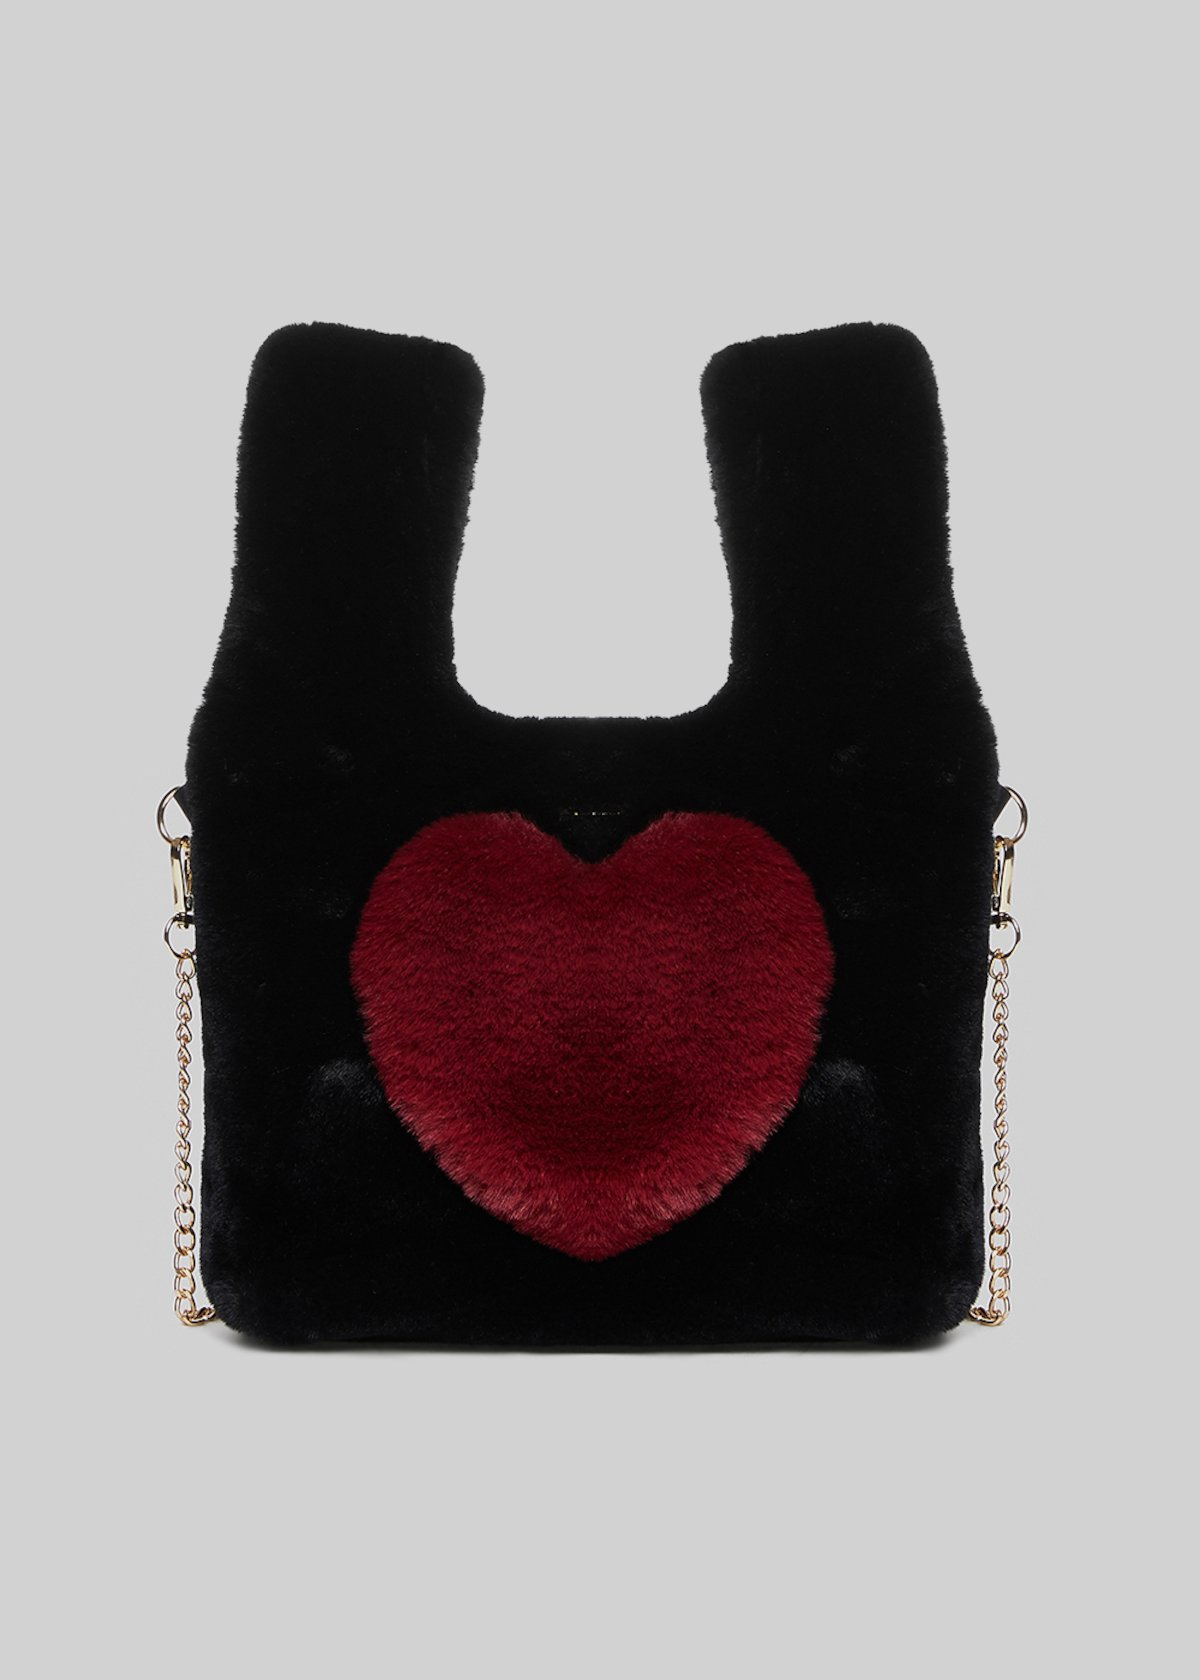 Balla ecofur bag  with heart detail in chili color - Black / Chili - Woman - Category image